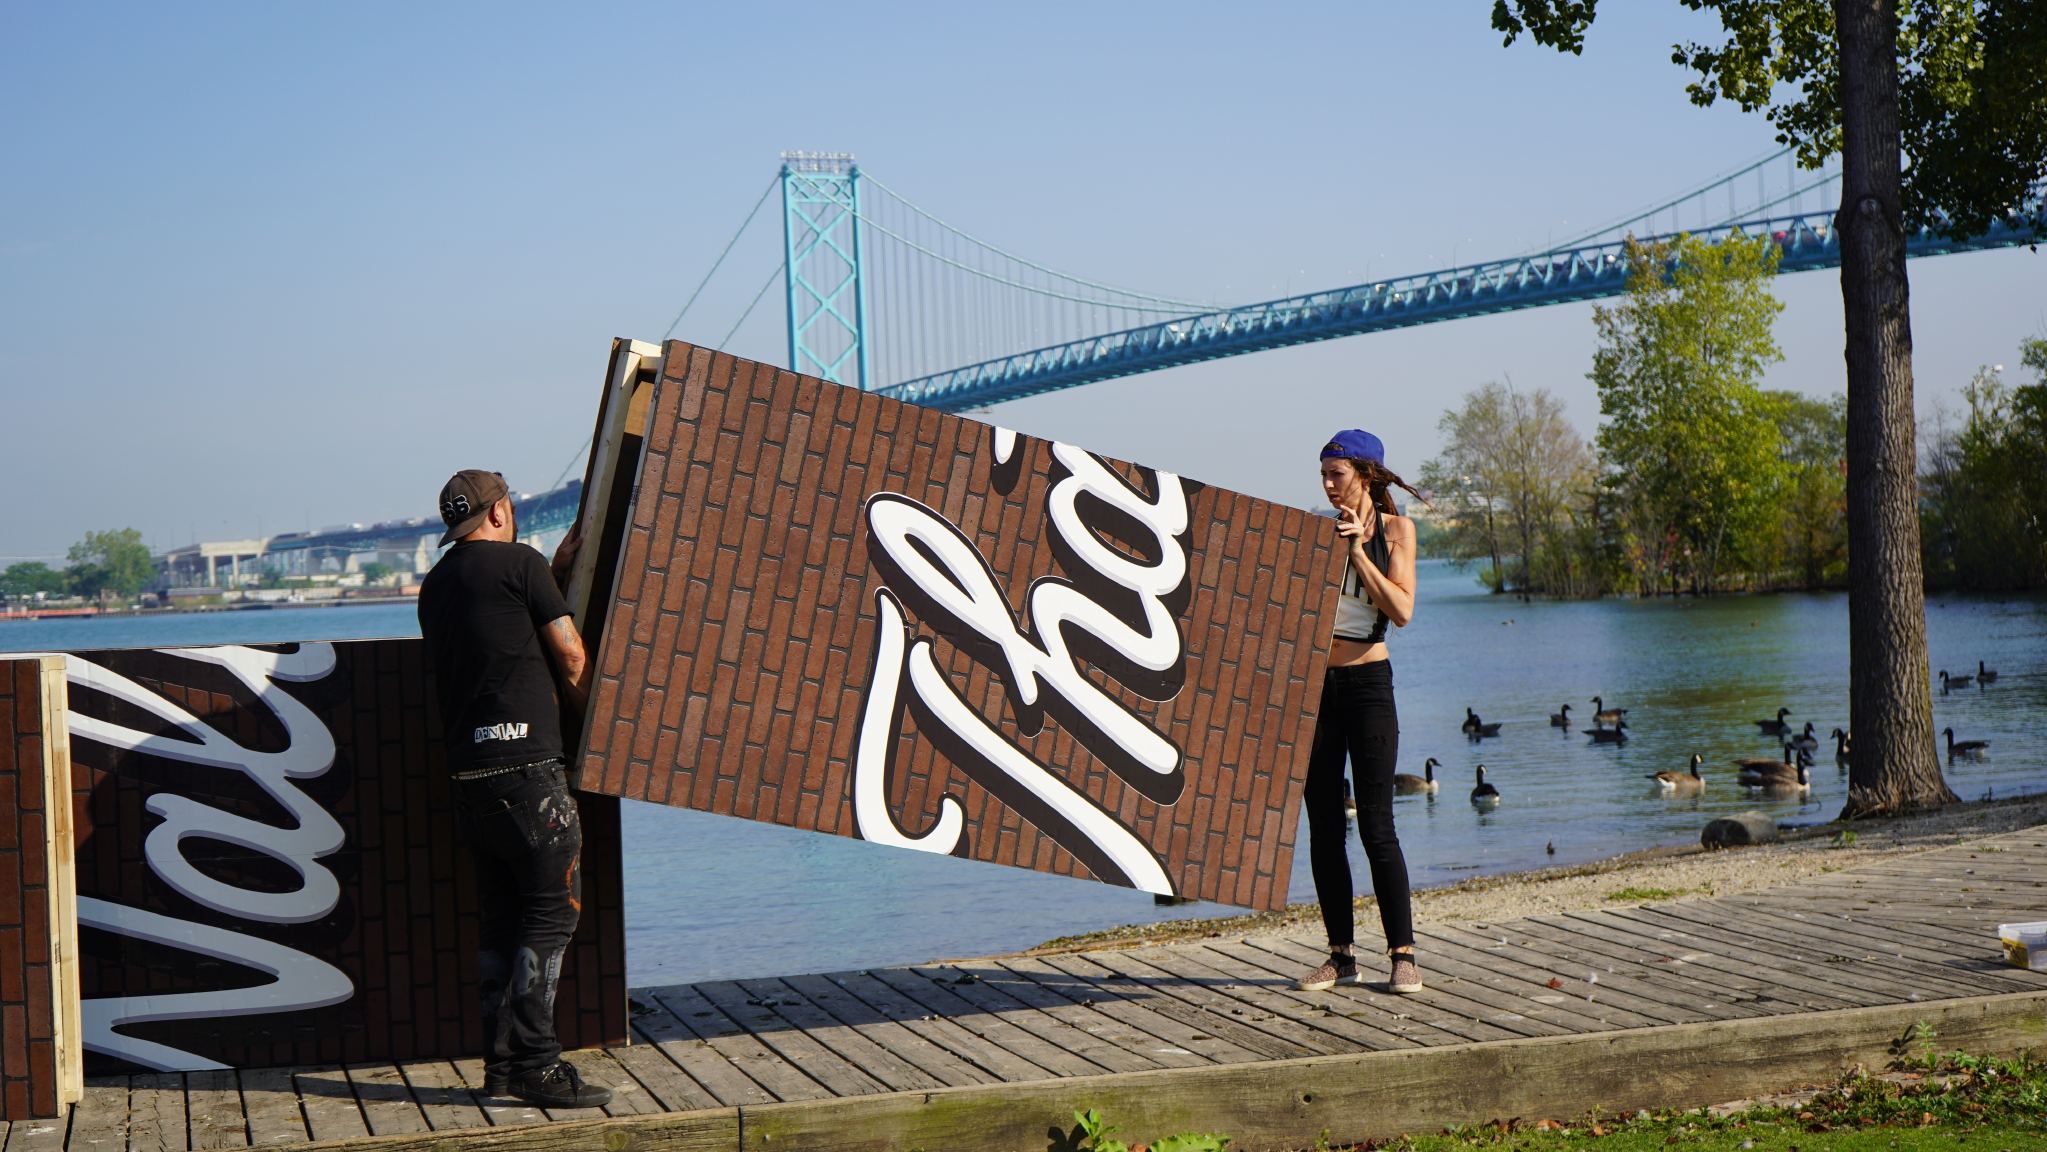 Denial installs his wall in McKee Park, Windsor, Ontario